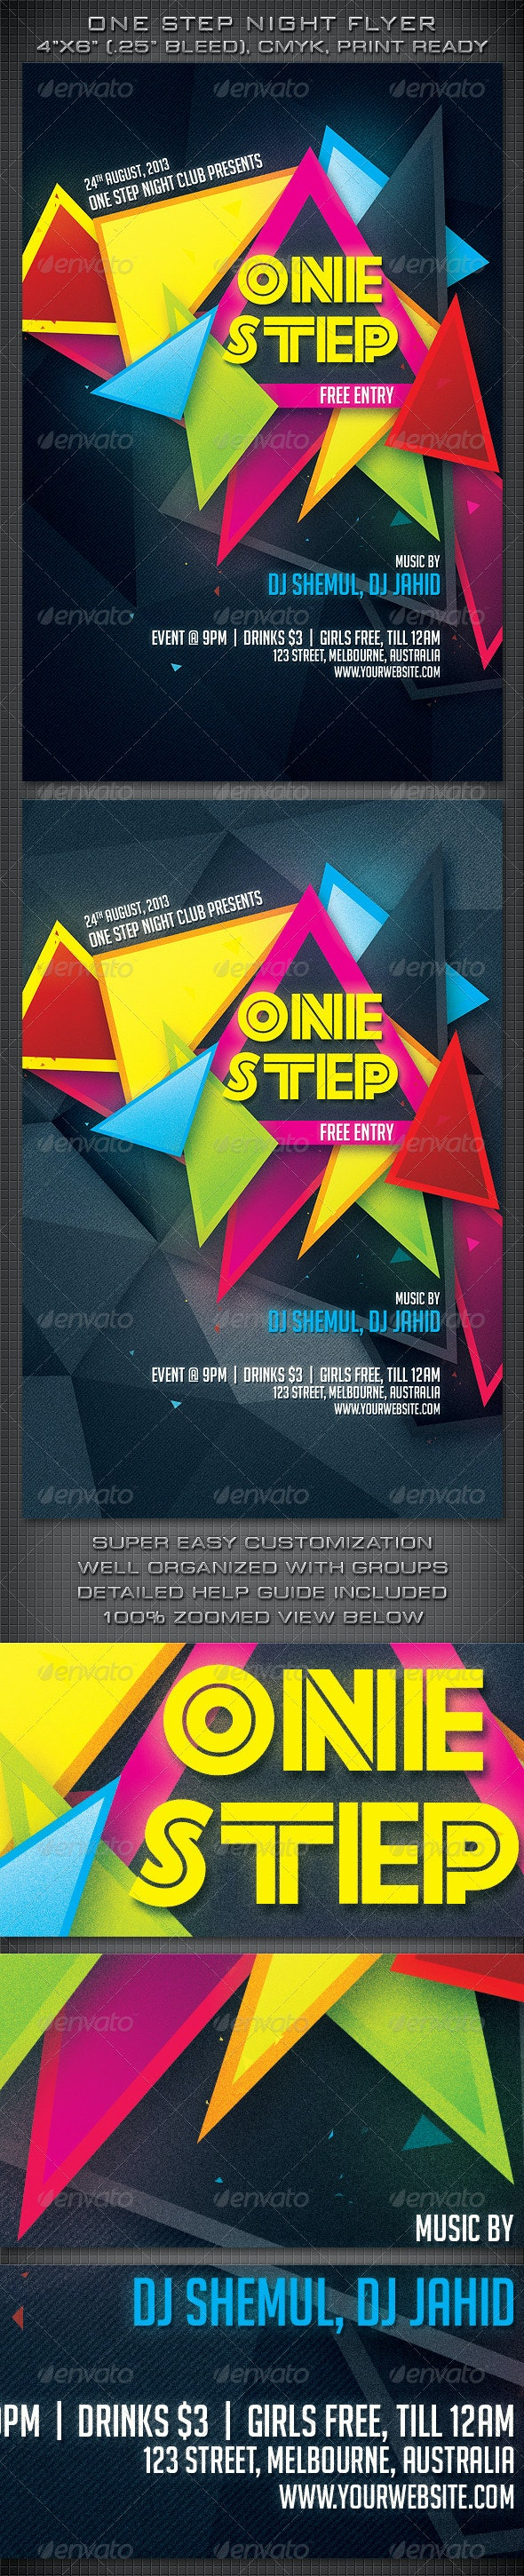 One Step Night Party Flyer - Clubs & Parties Events